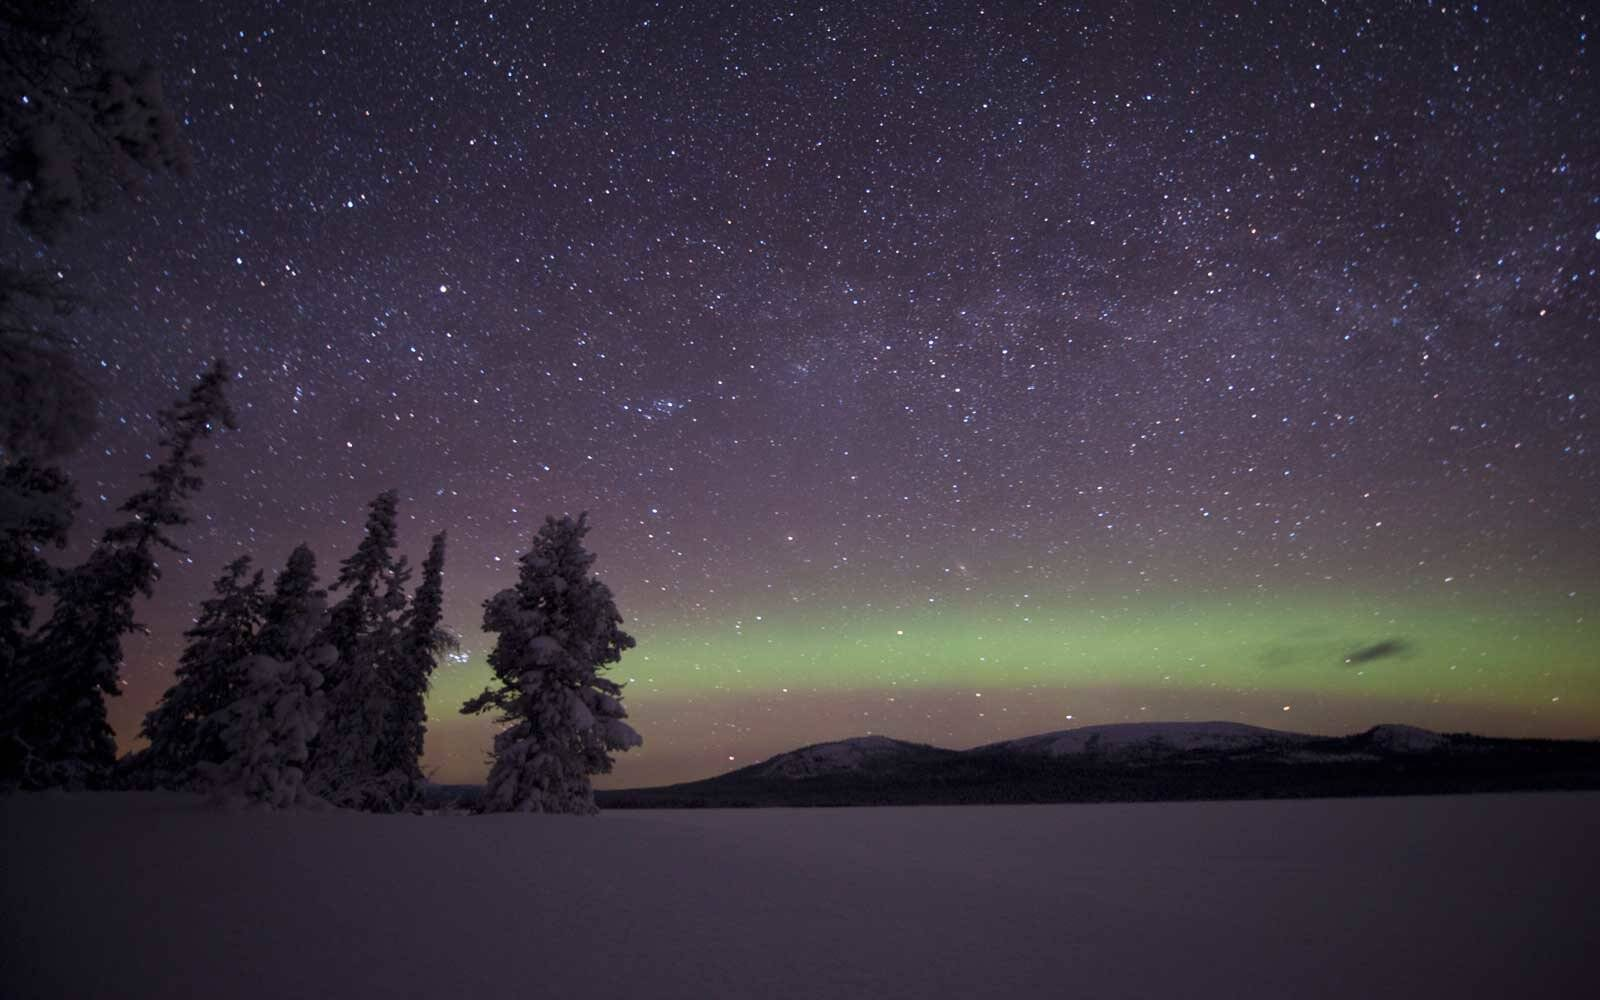 Sweden, Lappland, Jokkmokk, Aurora Borealis on night sky